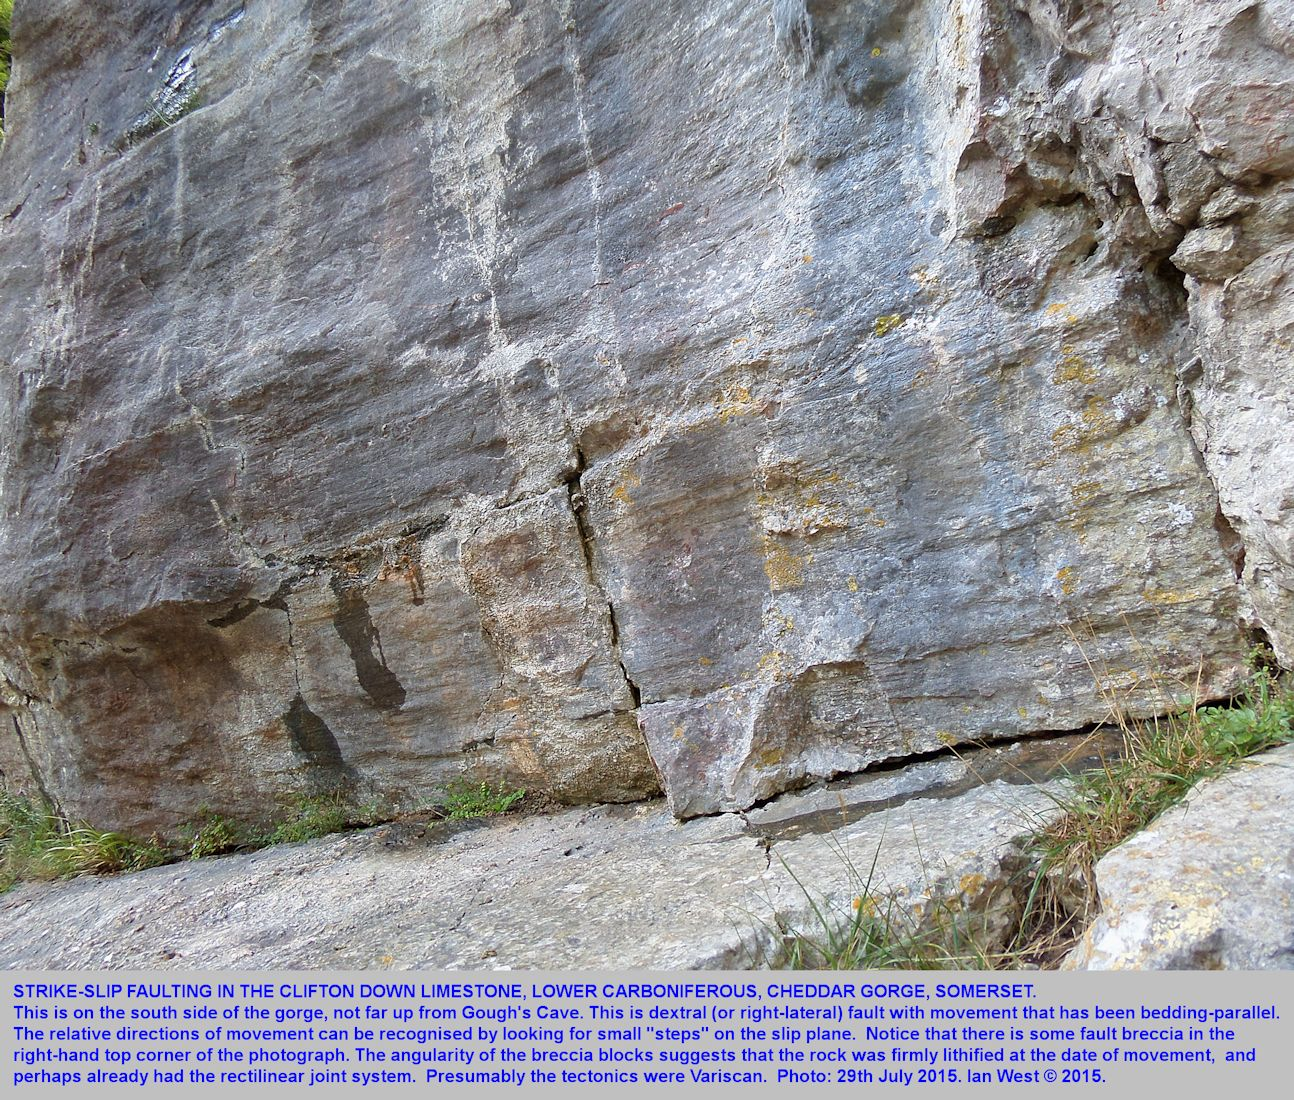 Strike-slip faulting in the lower part of Cheddar Gorge, Mendip Hills, Somerset, 29th July 2015